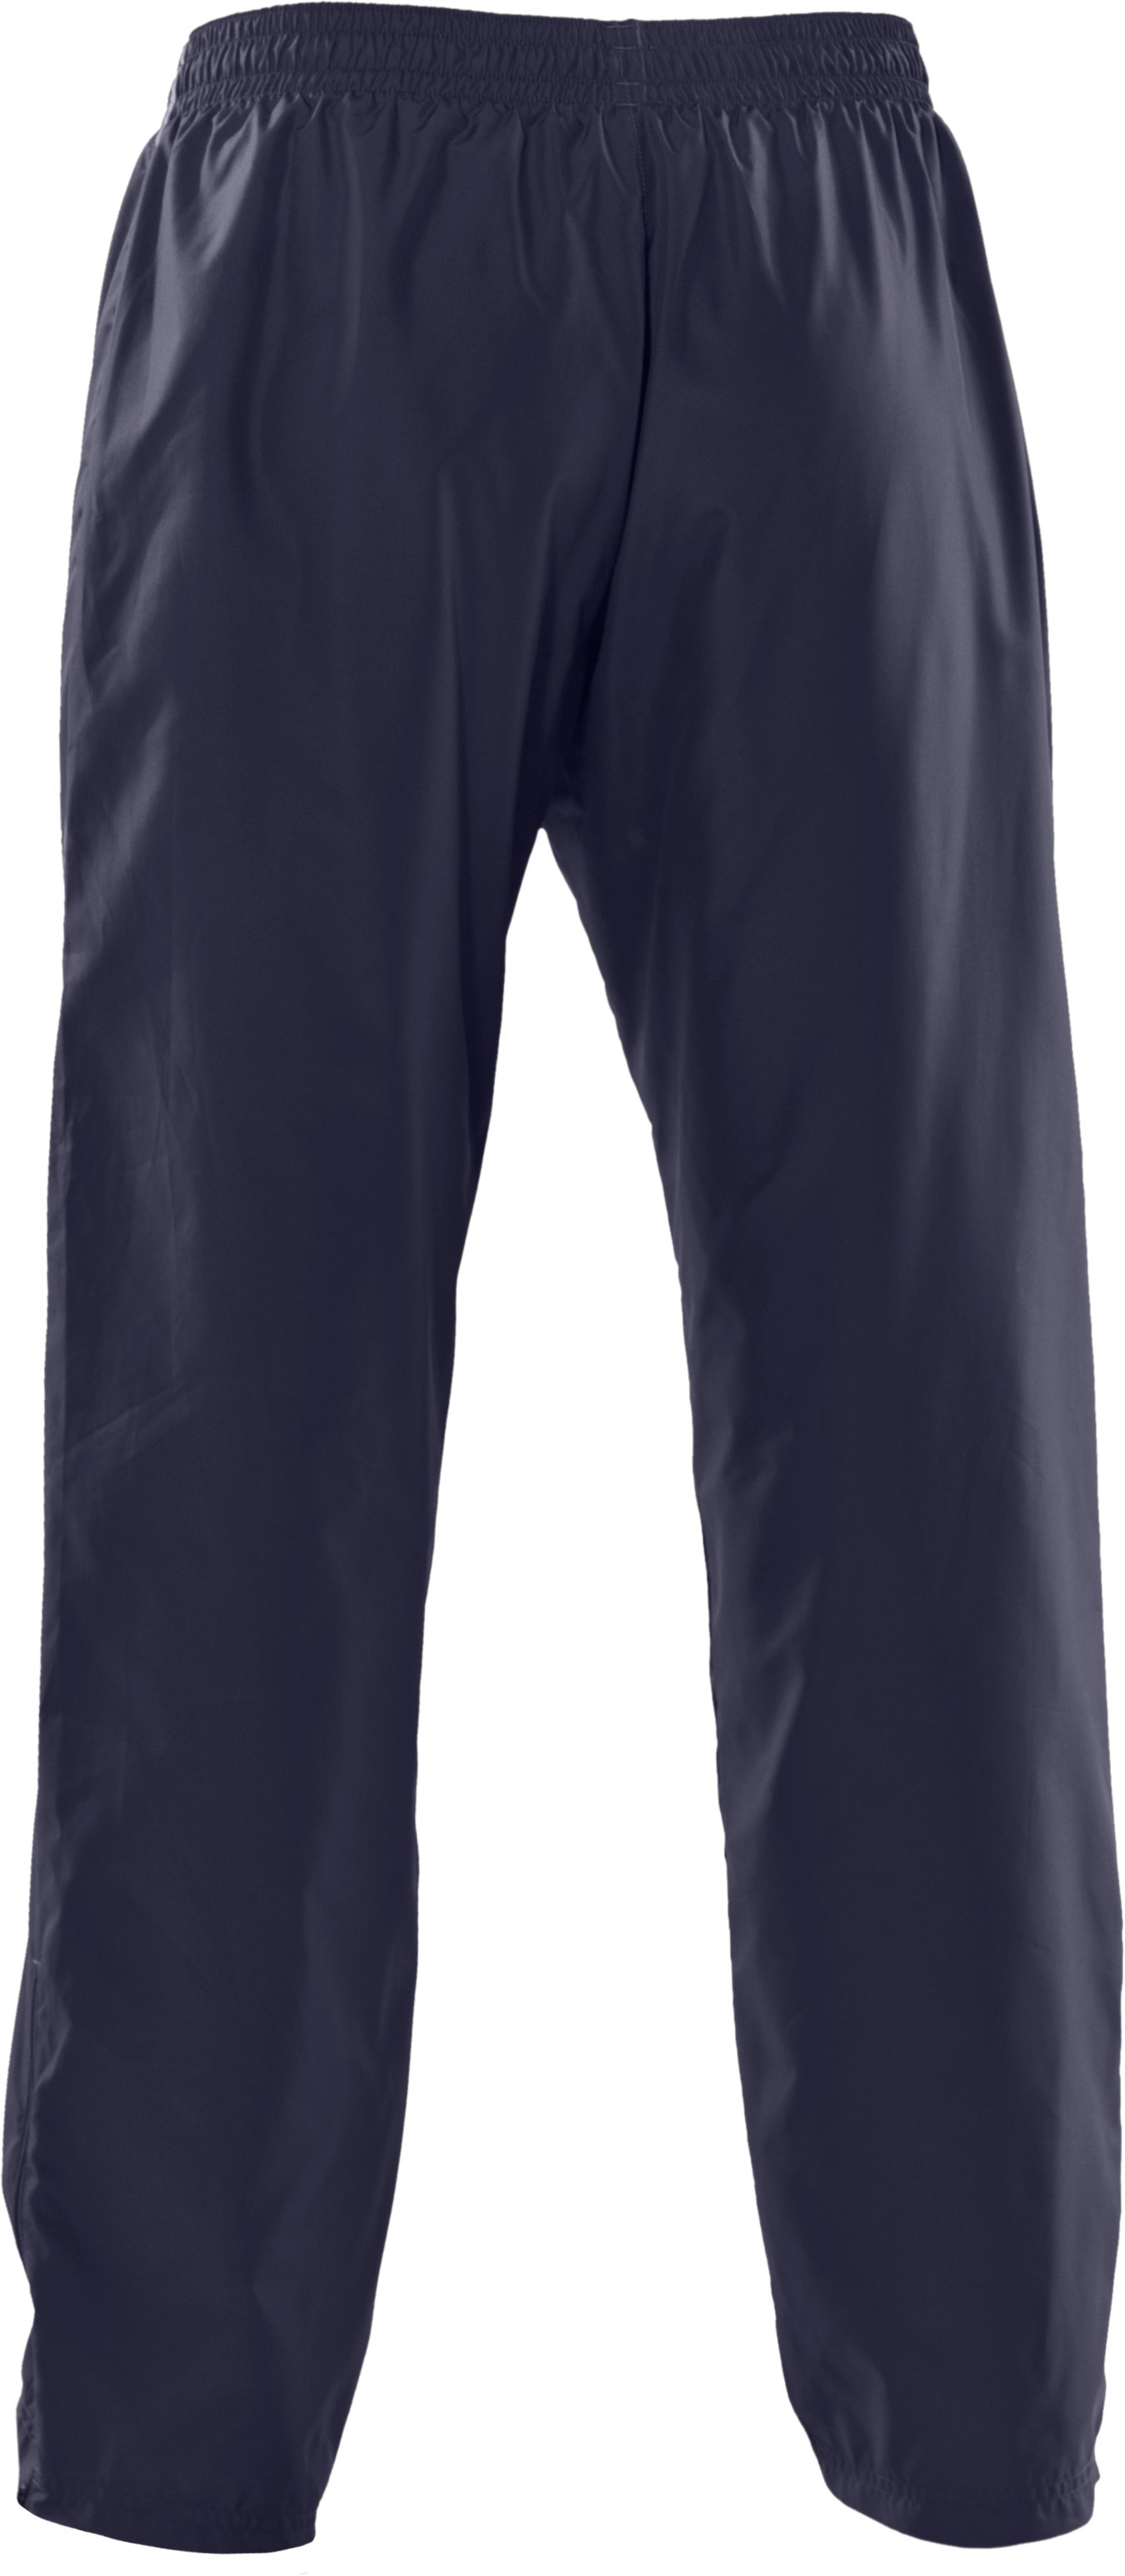 Women's Advance Woven Warm-Up Pants, Midnight Navy, undefined